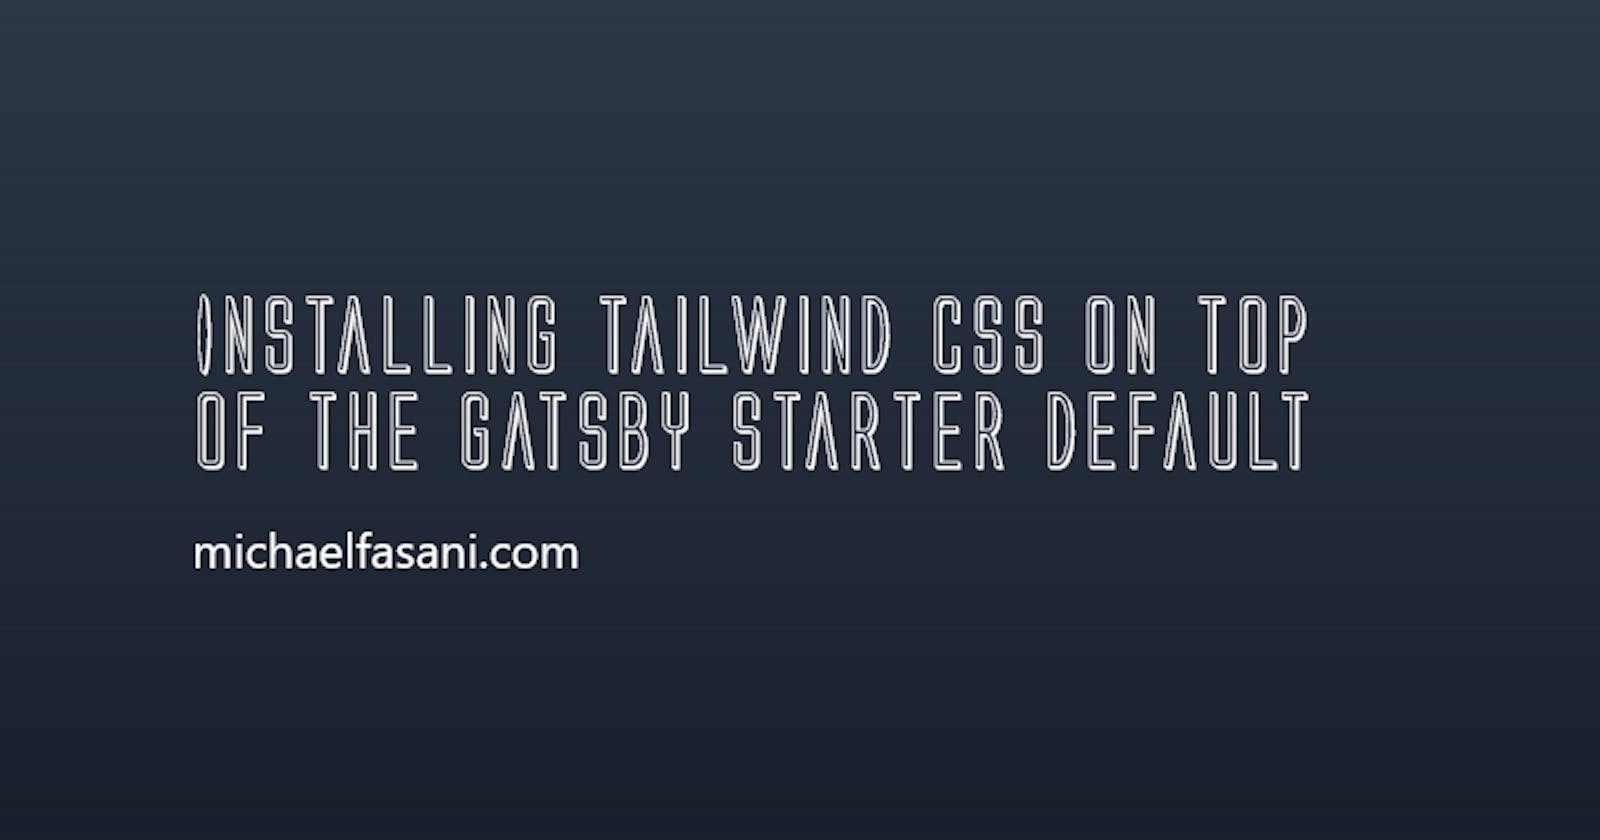 Installing Tailwind CSS on top of the Gatsby starter default